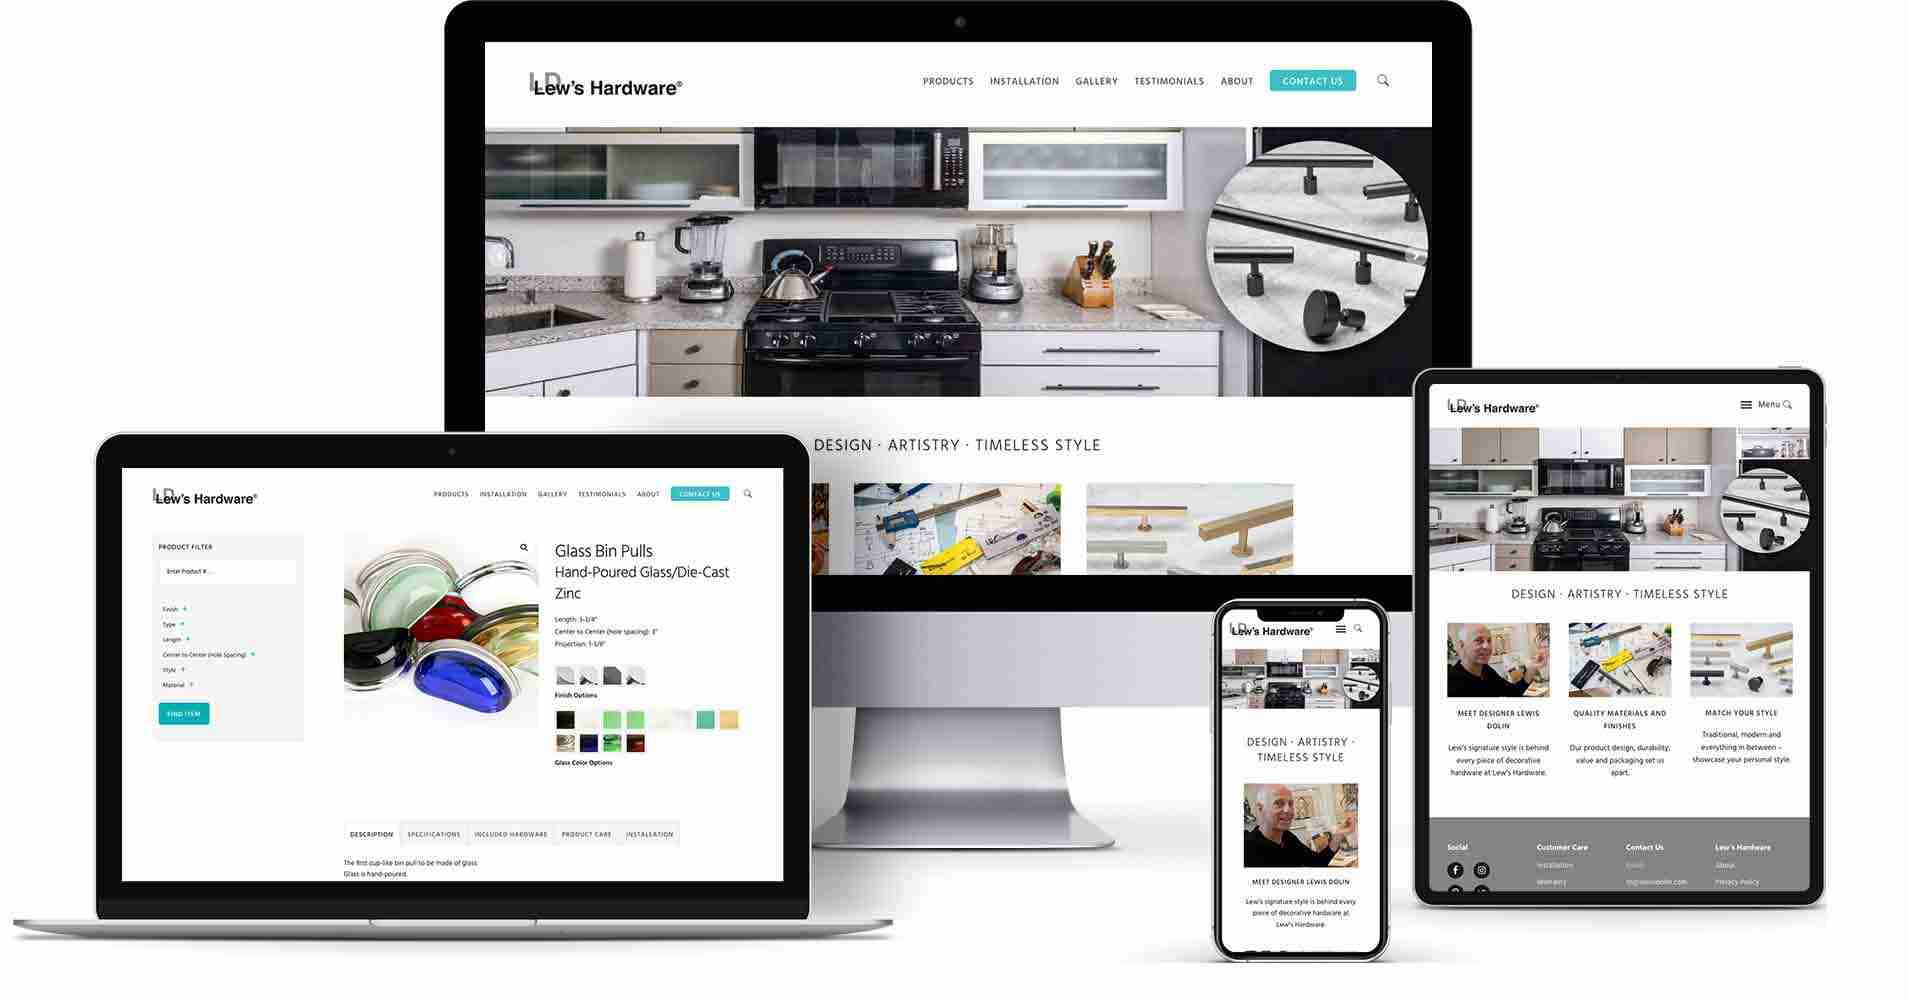 Recent project - Lew's Hardware showcase catalog website